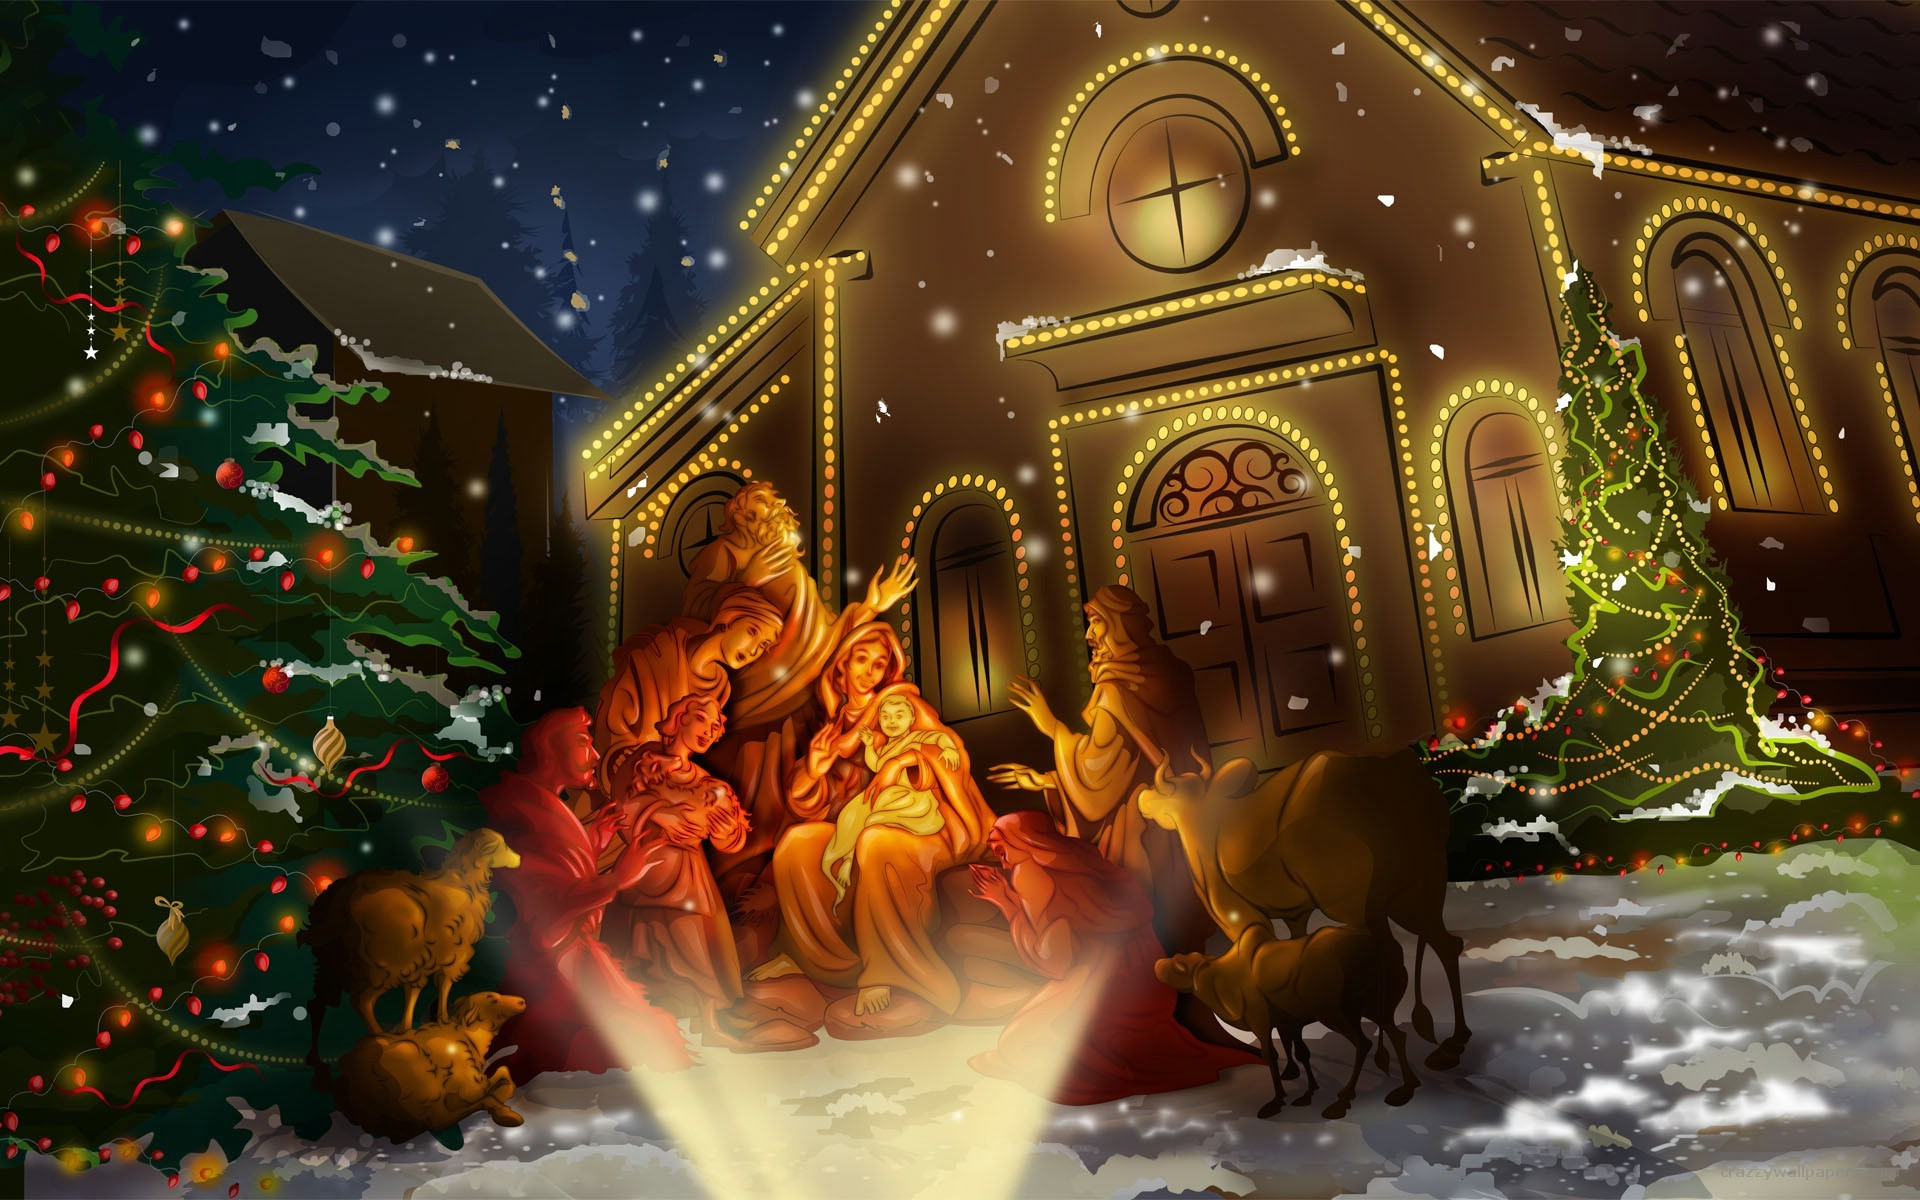 3d Animated Christmas Wallpapers 62 Images